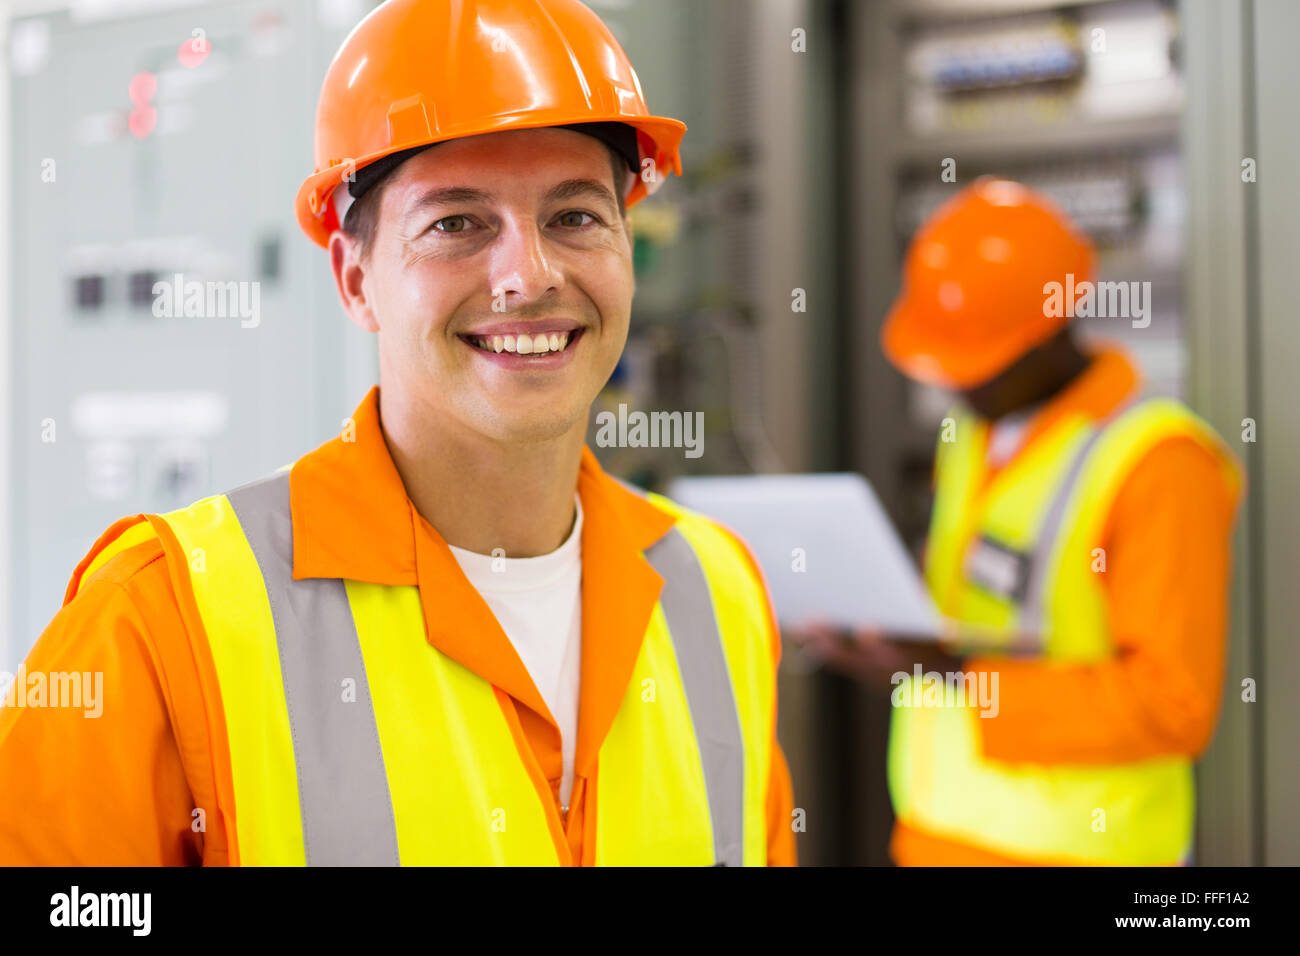 close up portrait of industrial technician in front of co-worker - Stock Image